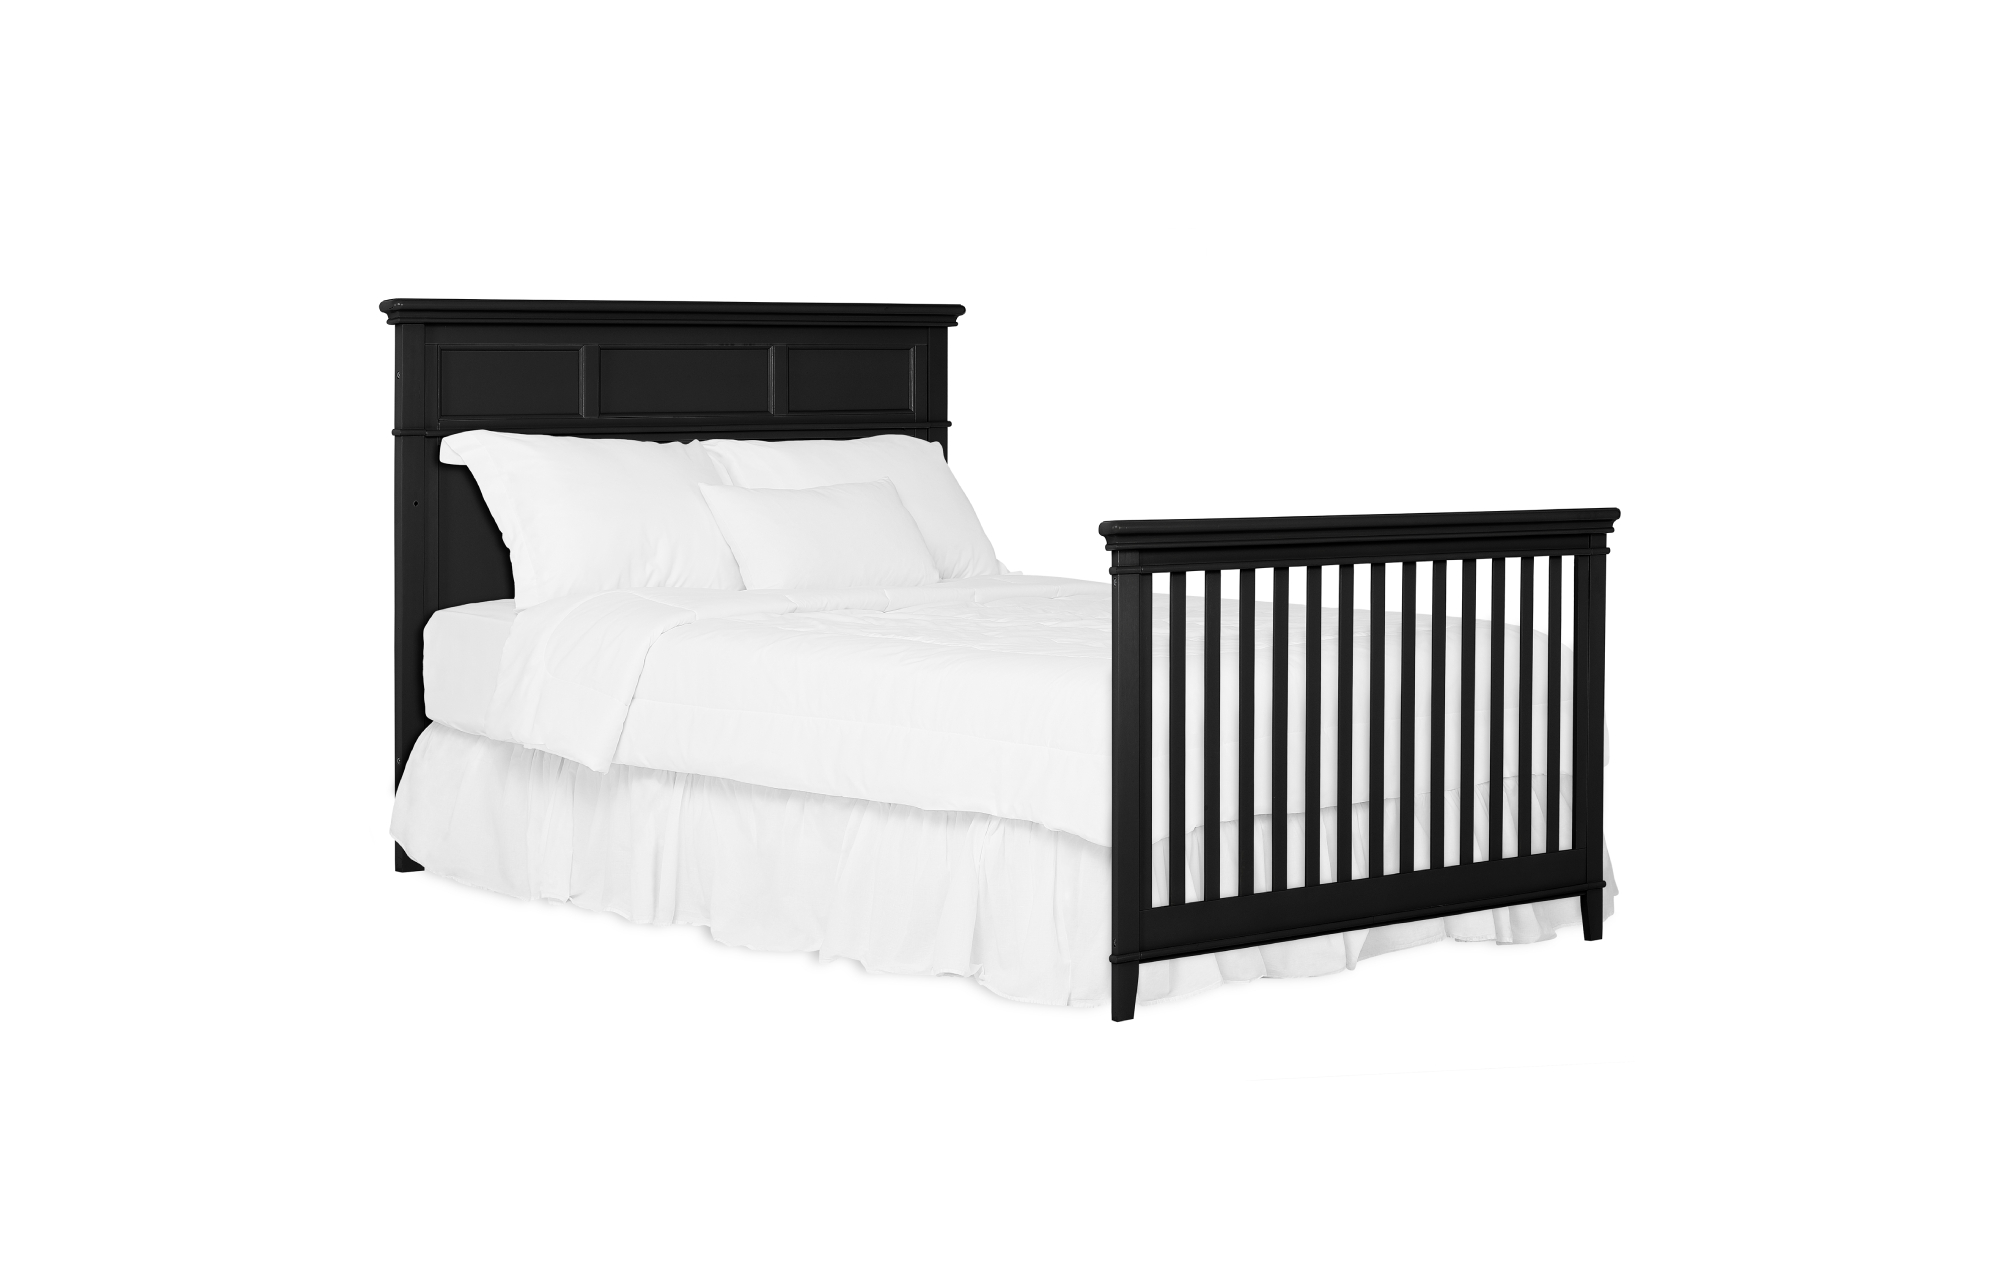 776-BLK Dover Full Size Bed with Headboard